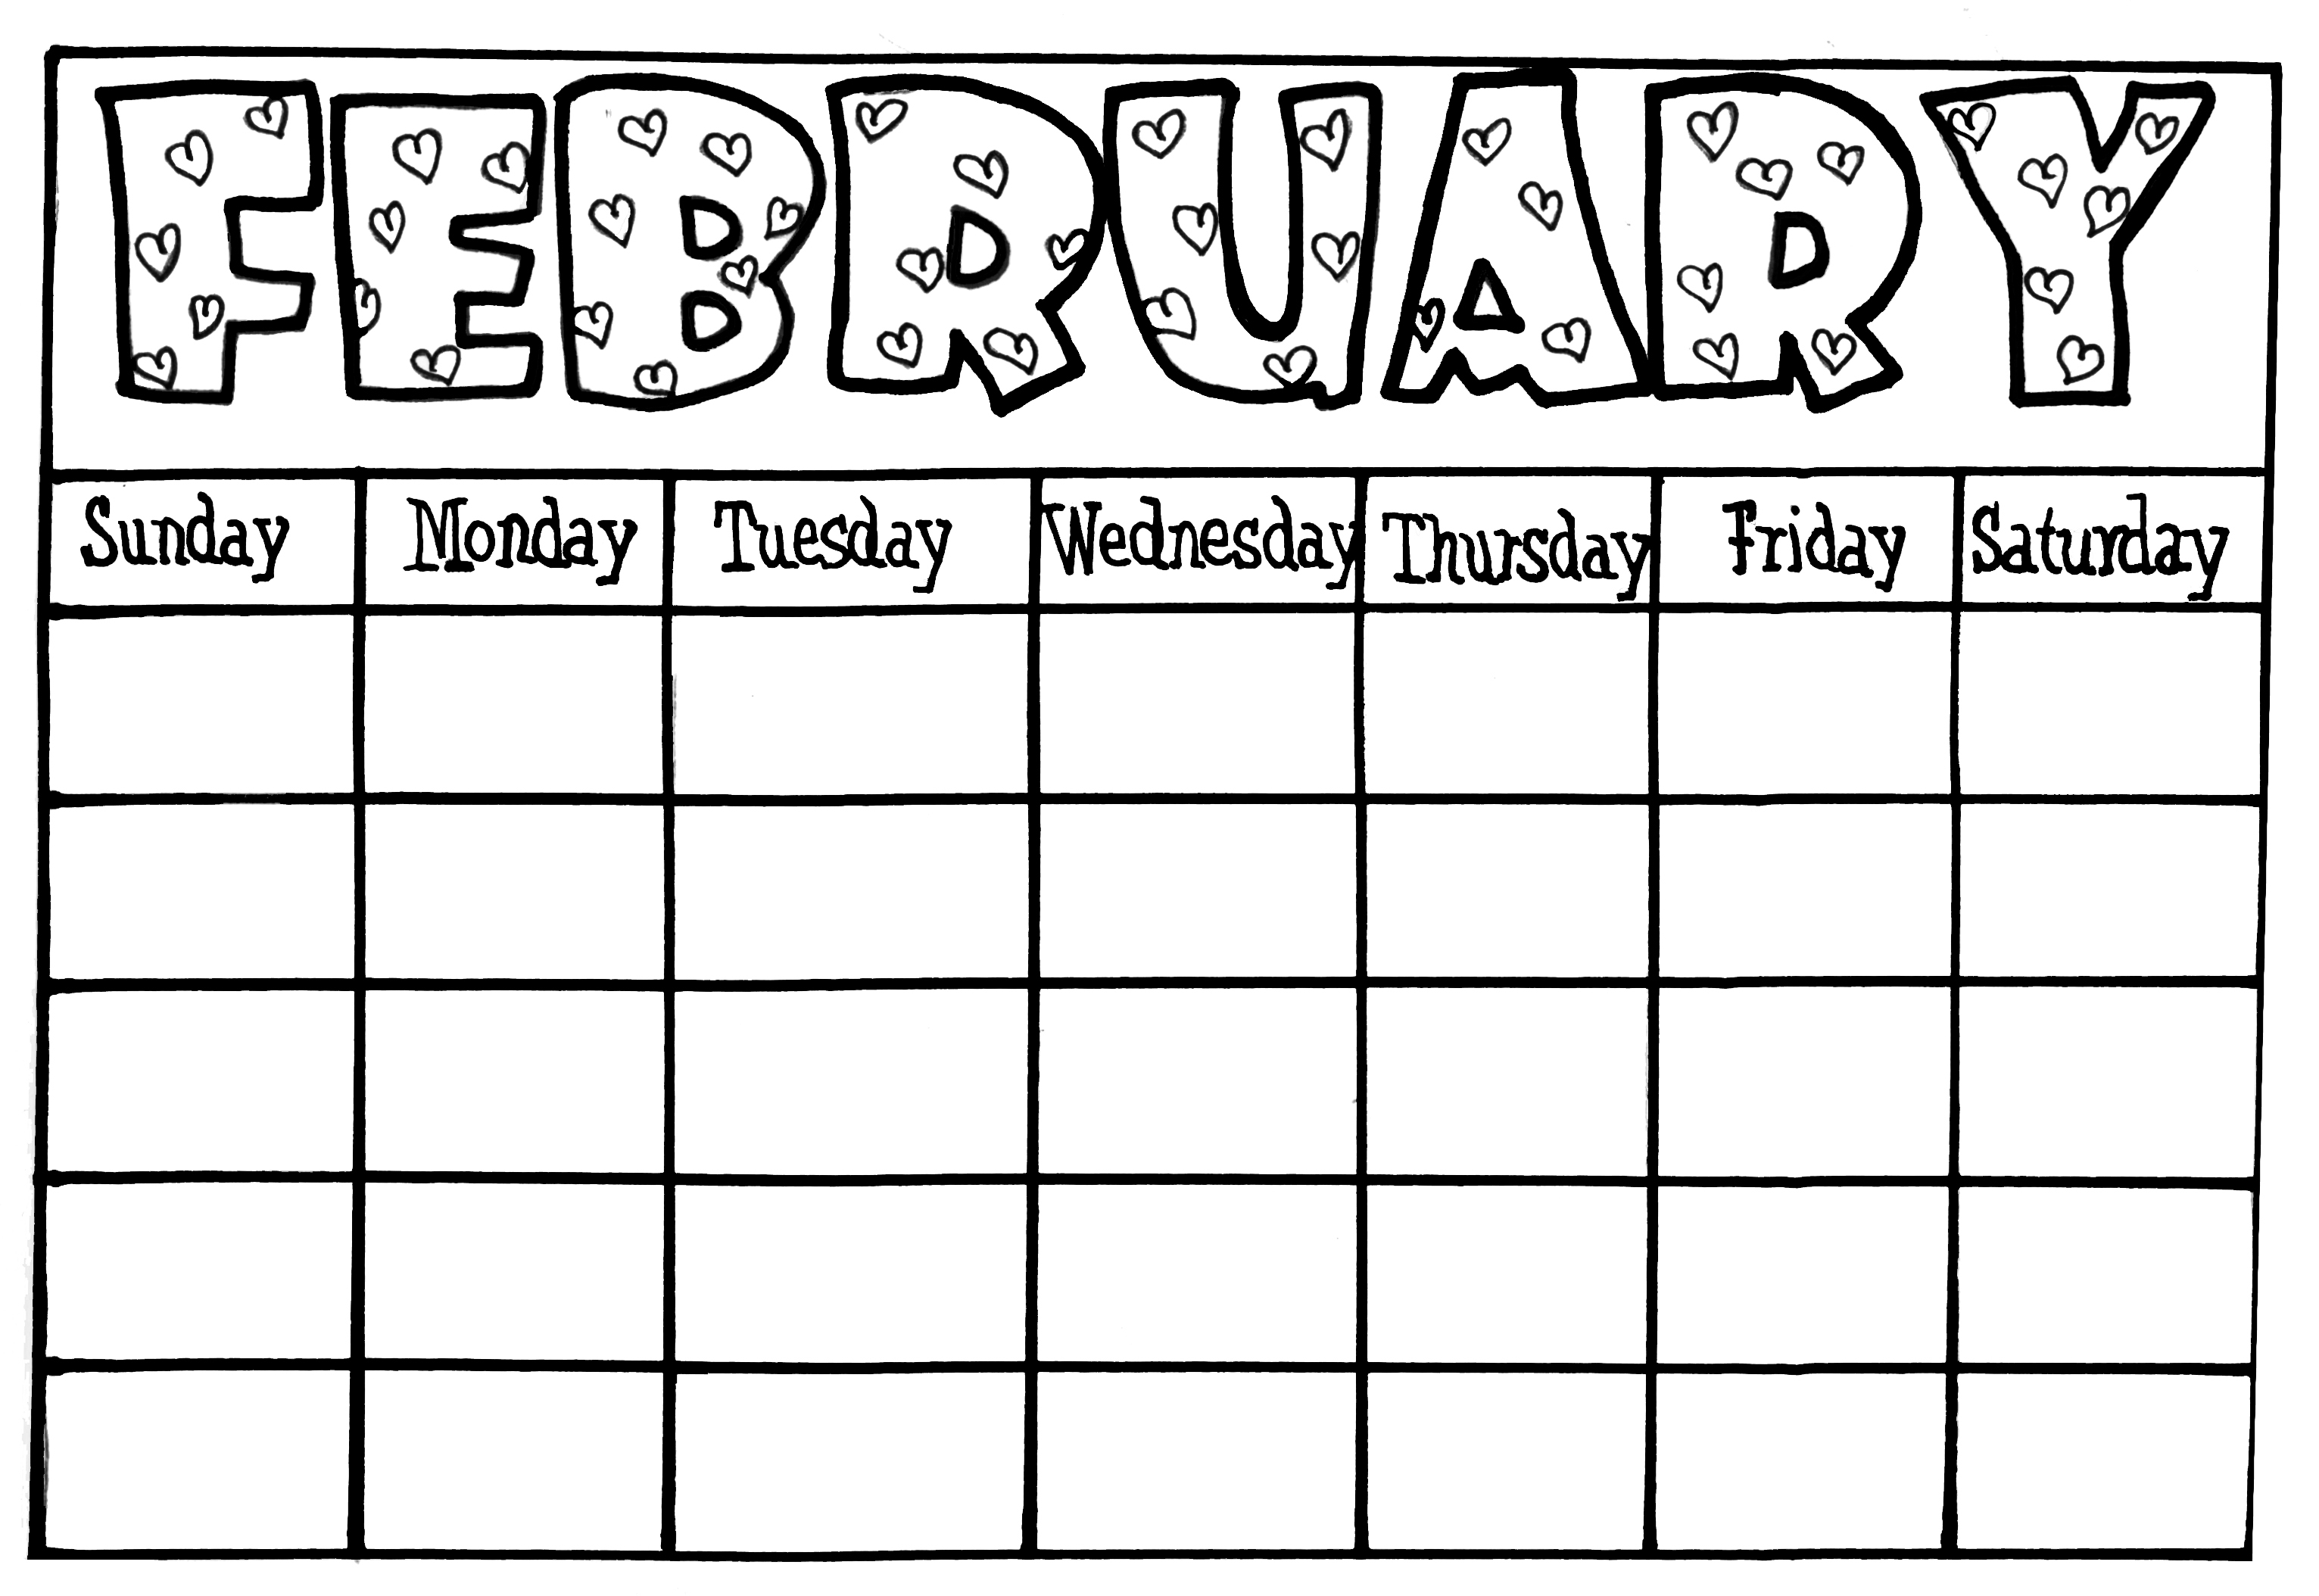 Blank Calendars For Kids Printable Online Calendar Images3abry